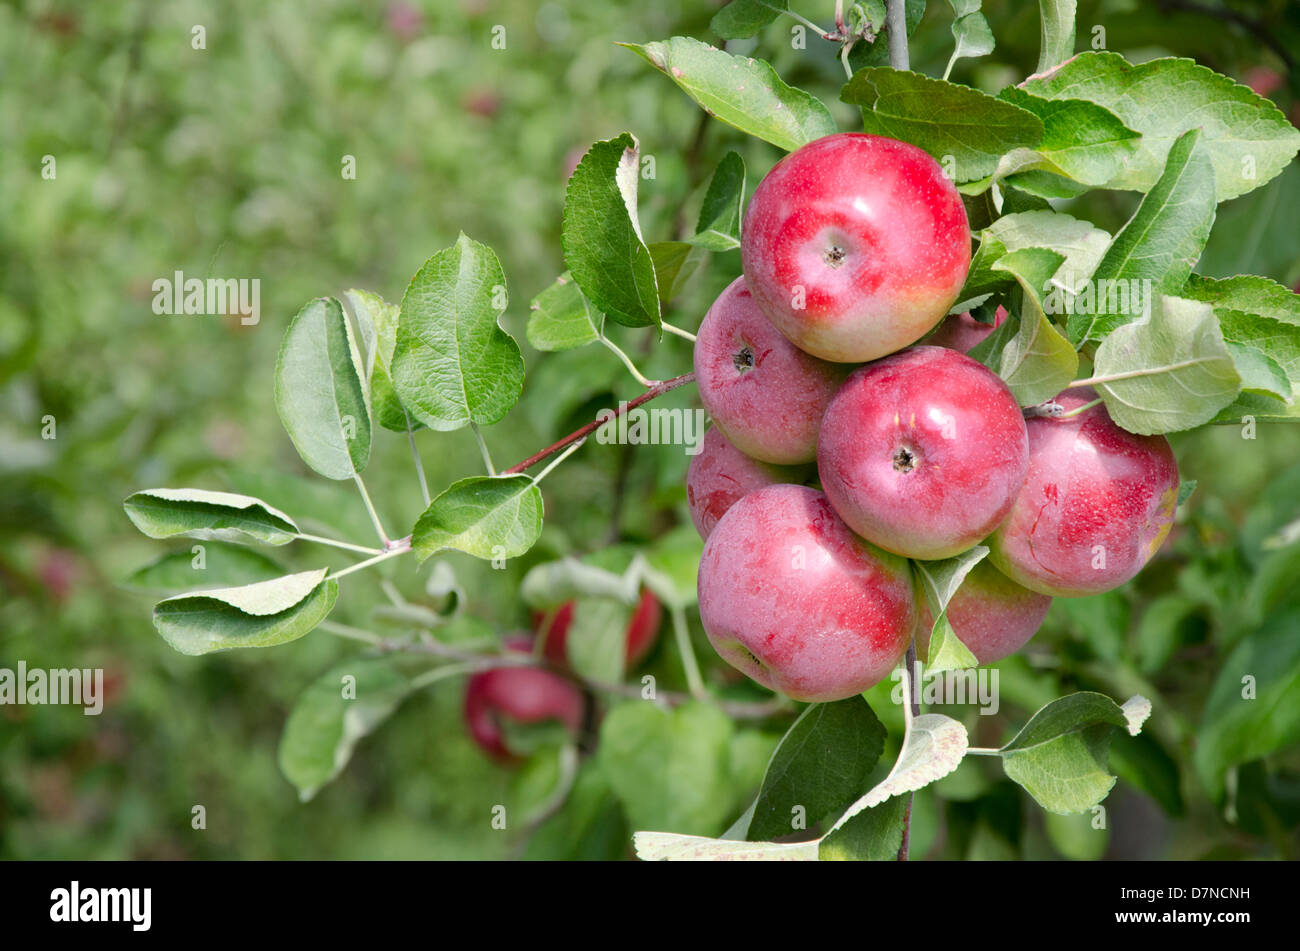 New York, Lafayette. Typical apple orchard in upstate New York at harvest time. - Stock Image